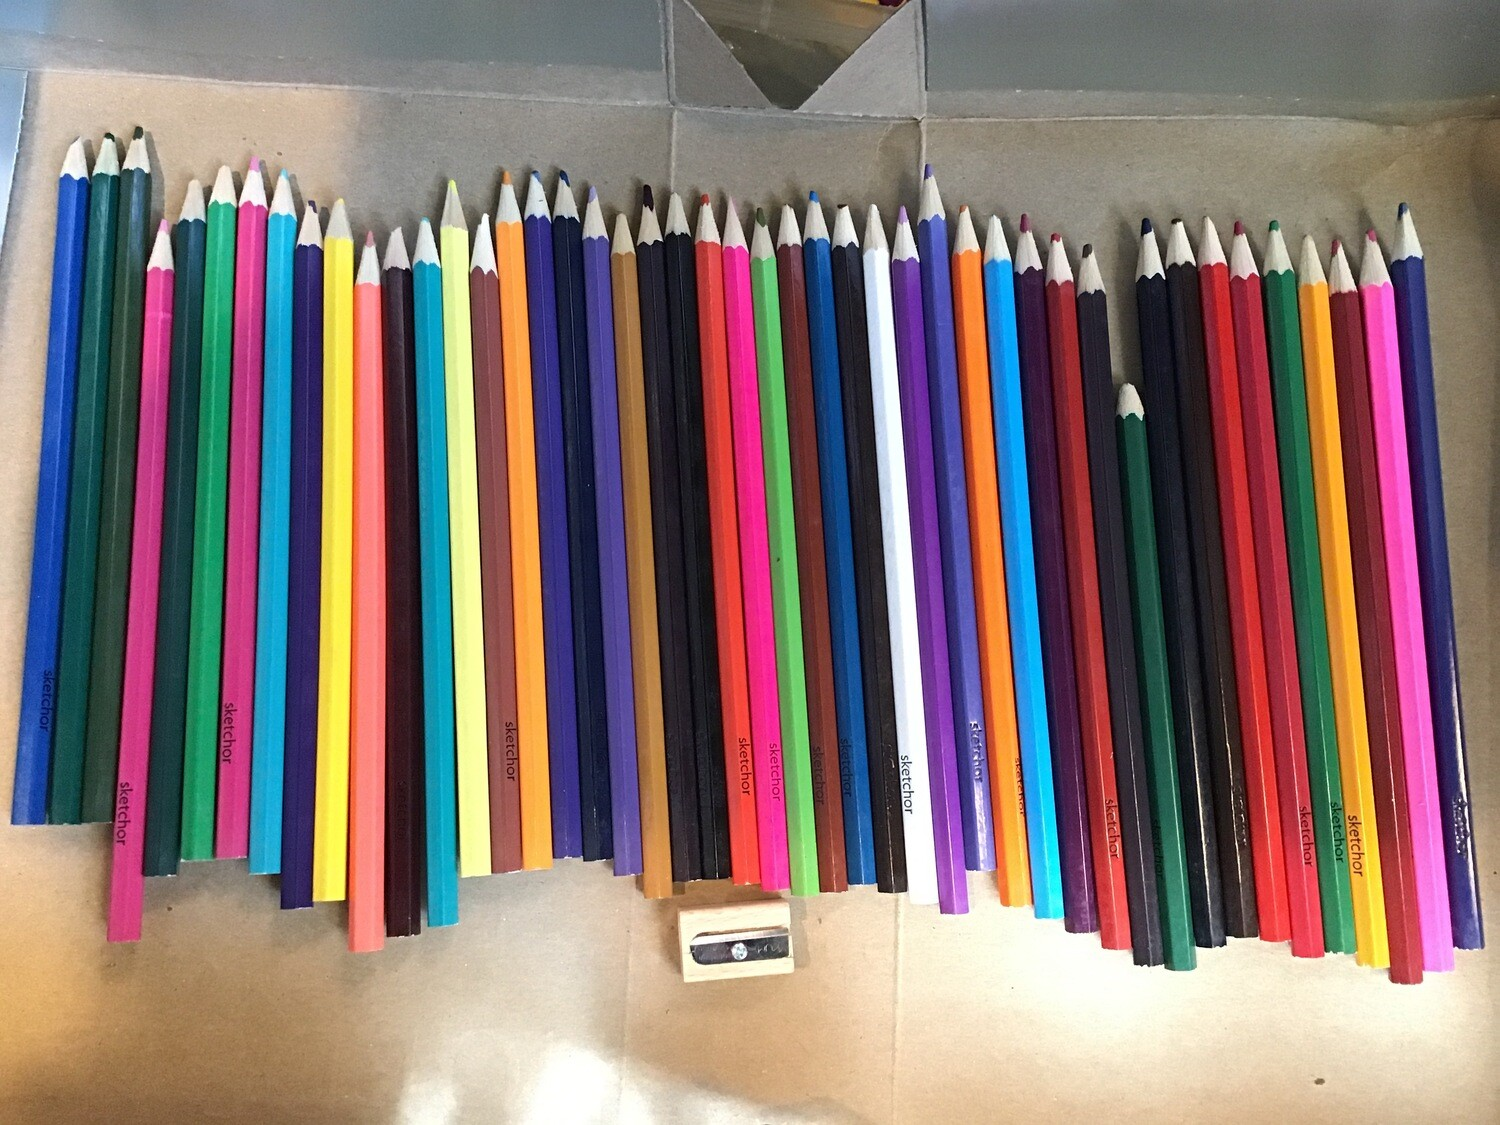 46 Color Pencils With Sharpener